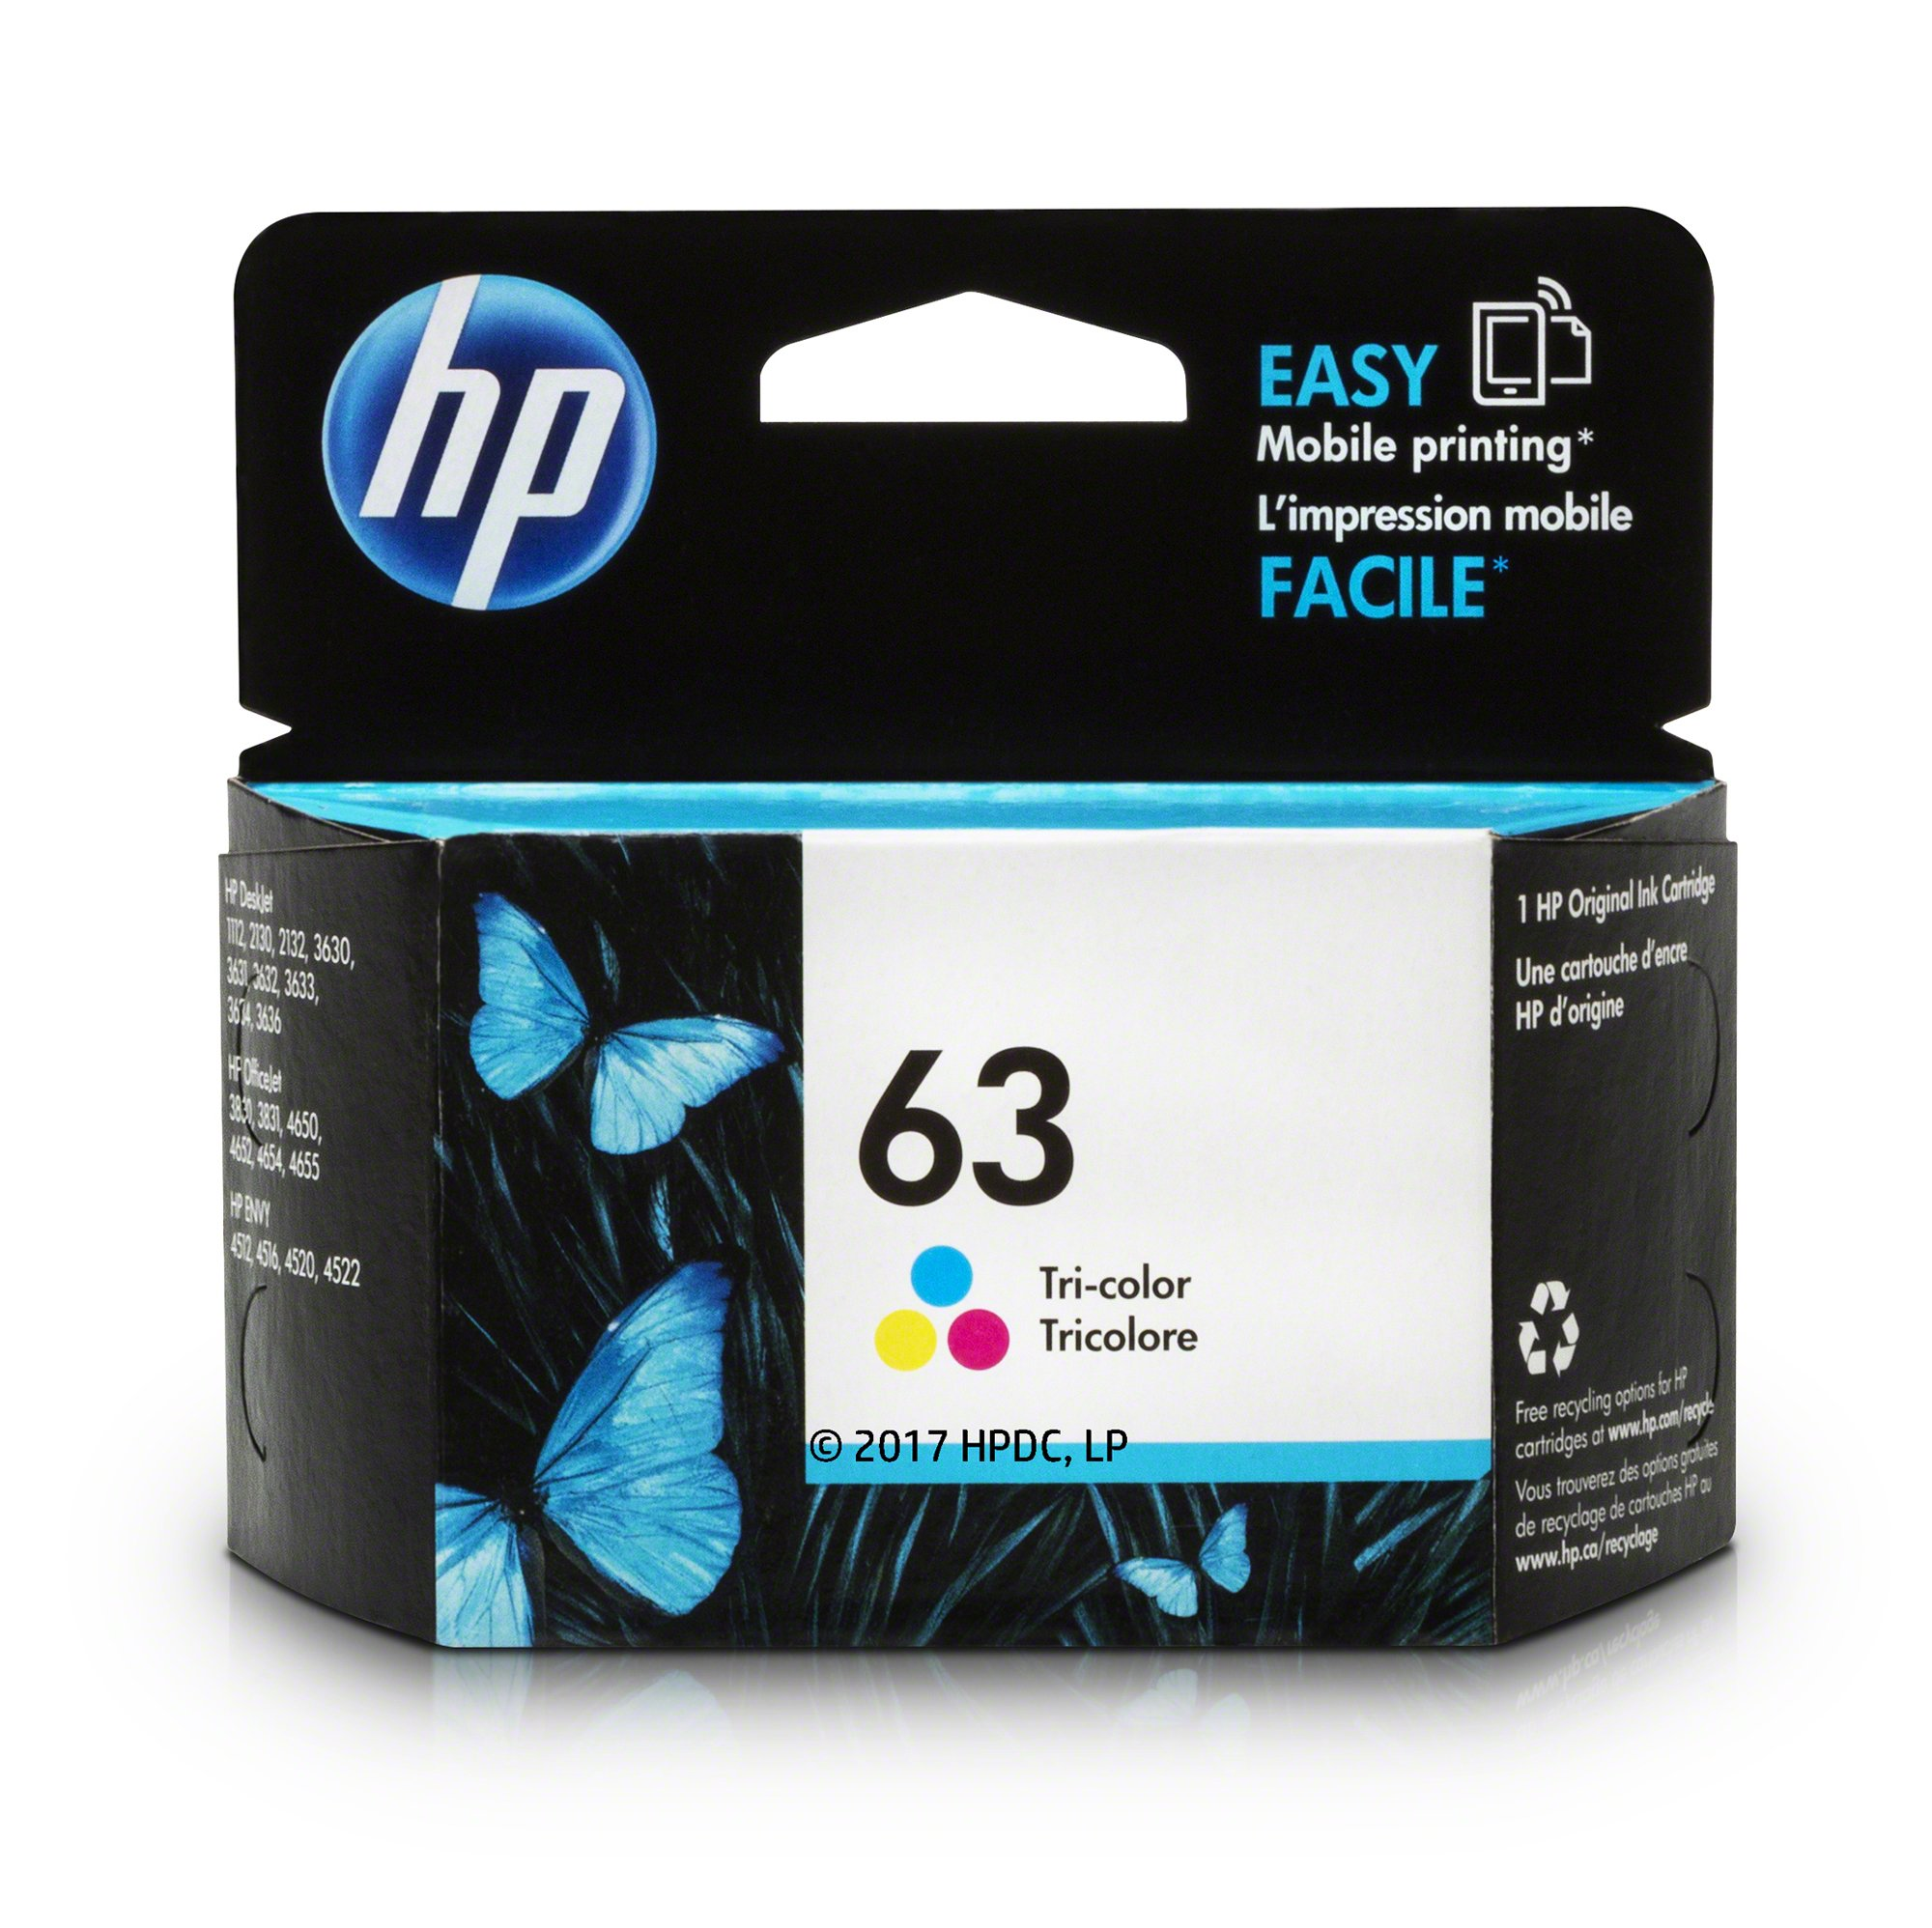 HP 63 Tri-color Original Ink Cartridge (F6U61AN) for HP Deskjet 1112 2130 2132 3630 3632 3633 3634 3636 3637 HP ENVY 4512 4513 4520 4523 4524 HP Officejet 3830 3831 3833 4650 4652 4654 4655